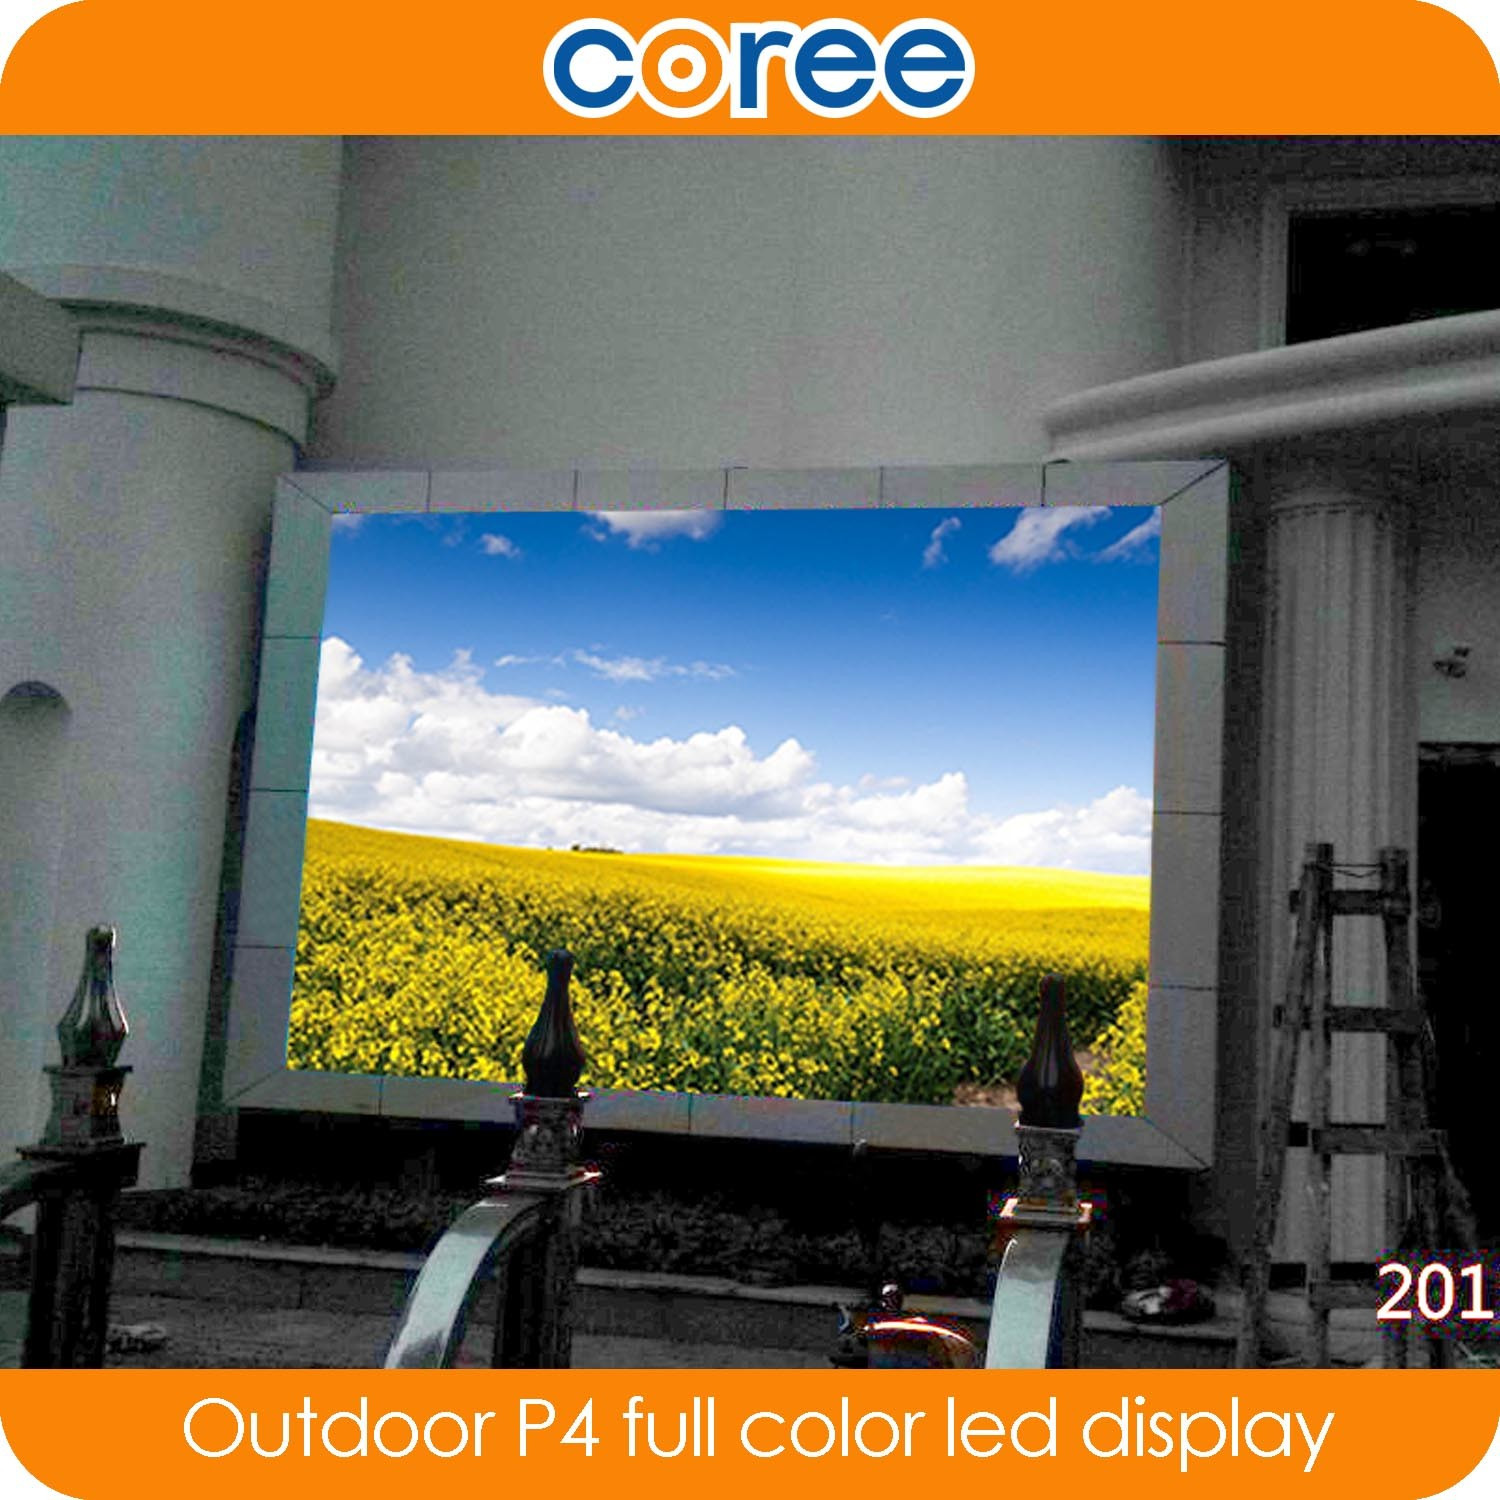 Outdoor High Definition P4 Full Color LED Display